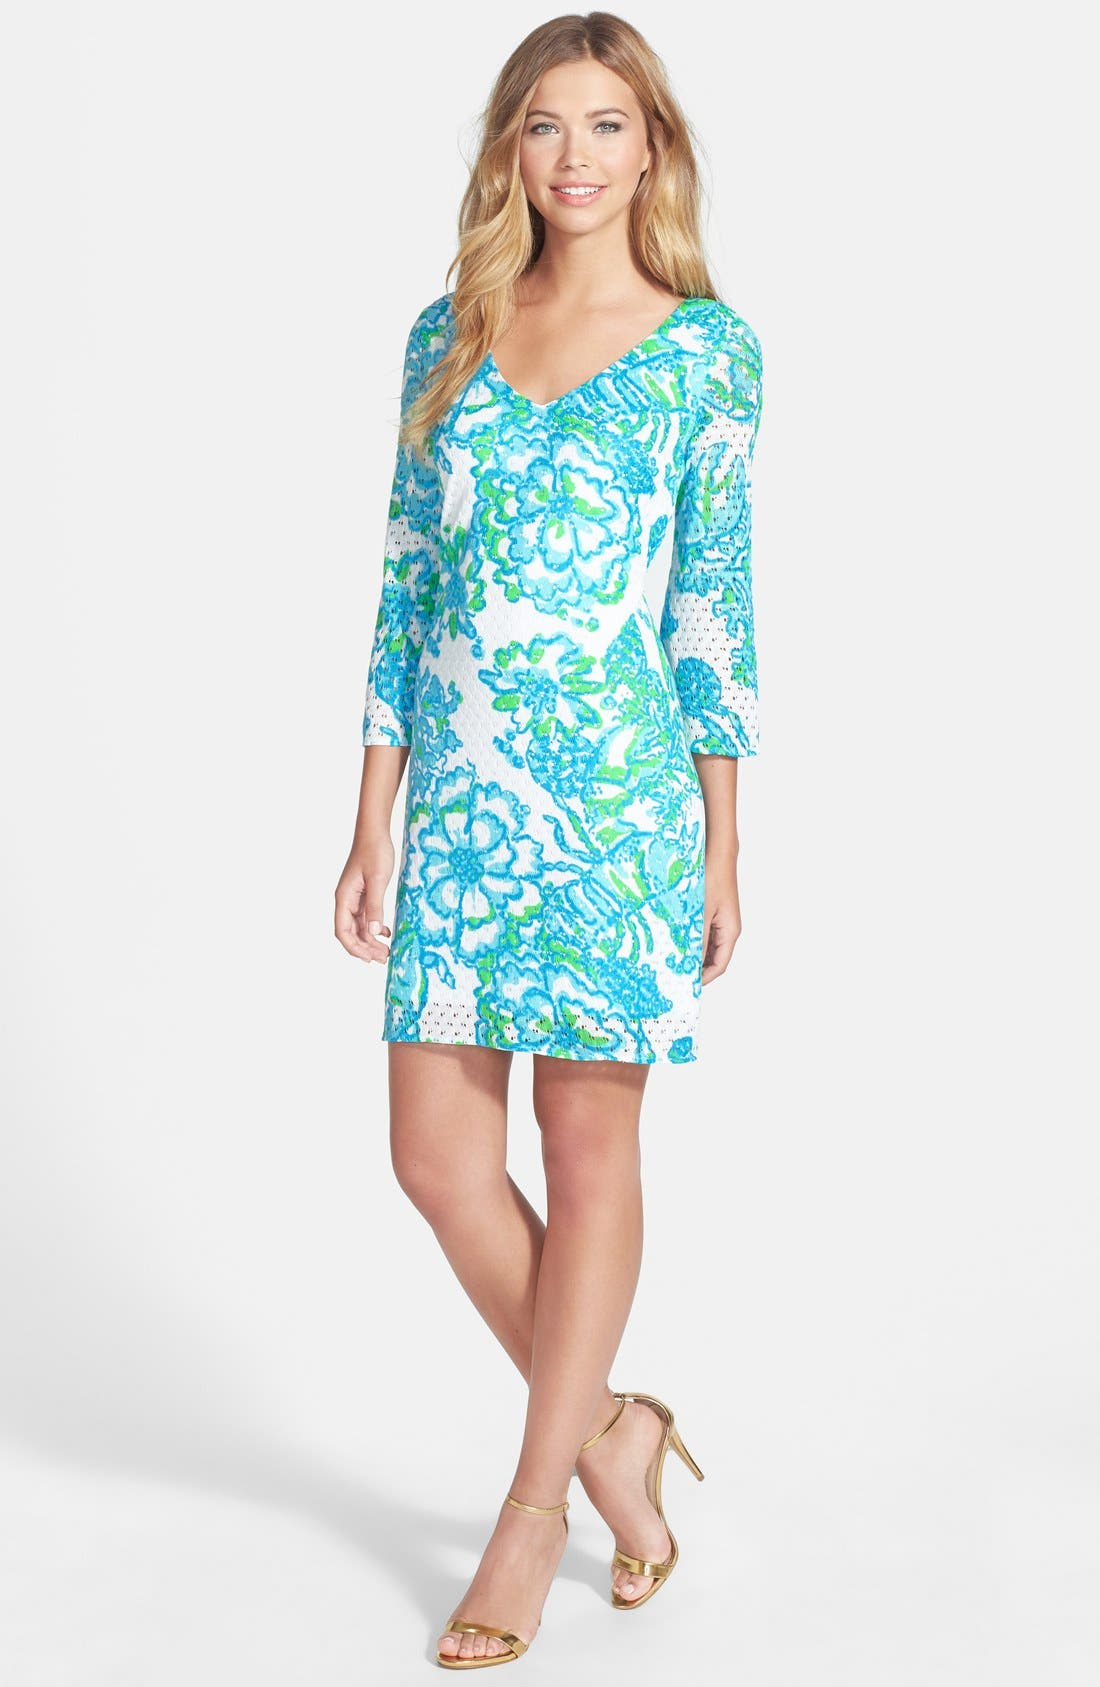 Main Image - Lilly Pulitzer® 'Alden' Print Mesh Lace Shift Dress